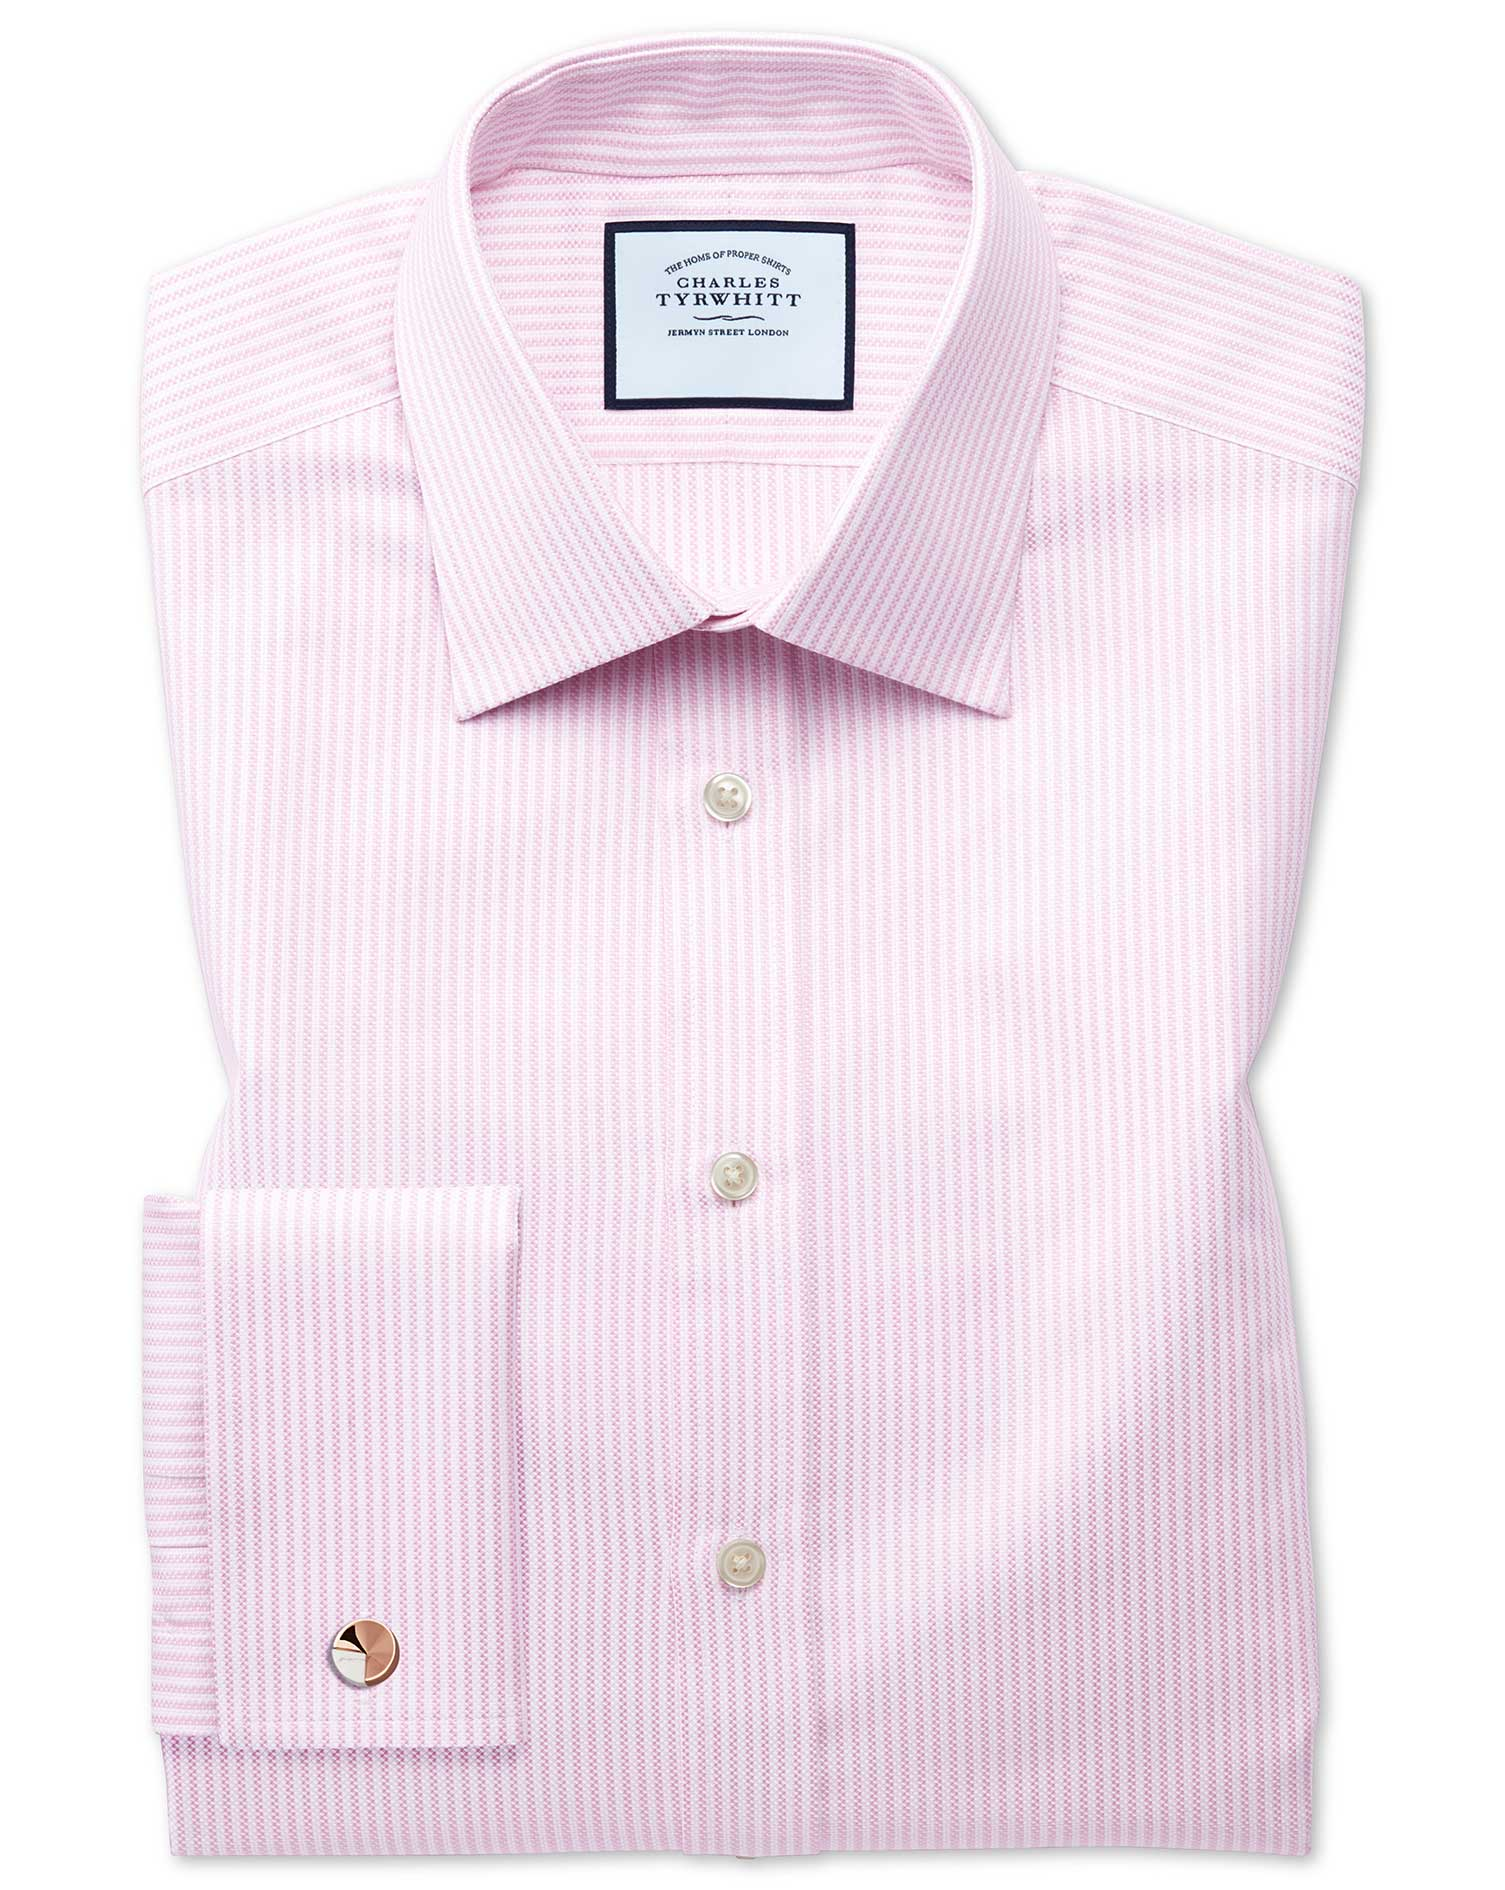 Classic Fit Egyptian Cotton Royal Oxford Pink and White Stripe Formal Shirt Double Cuff Size 15.5/33